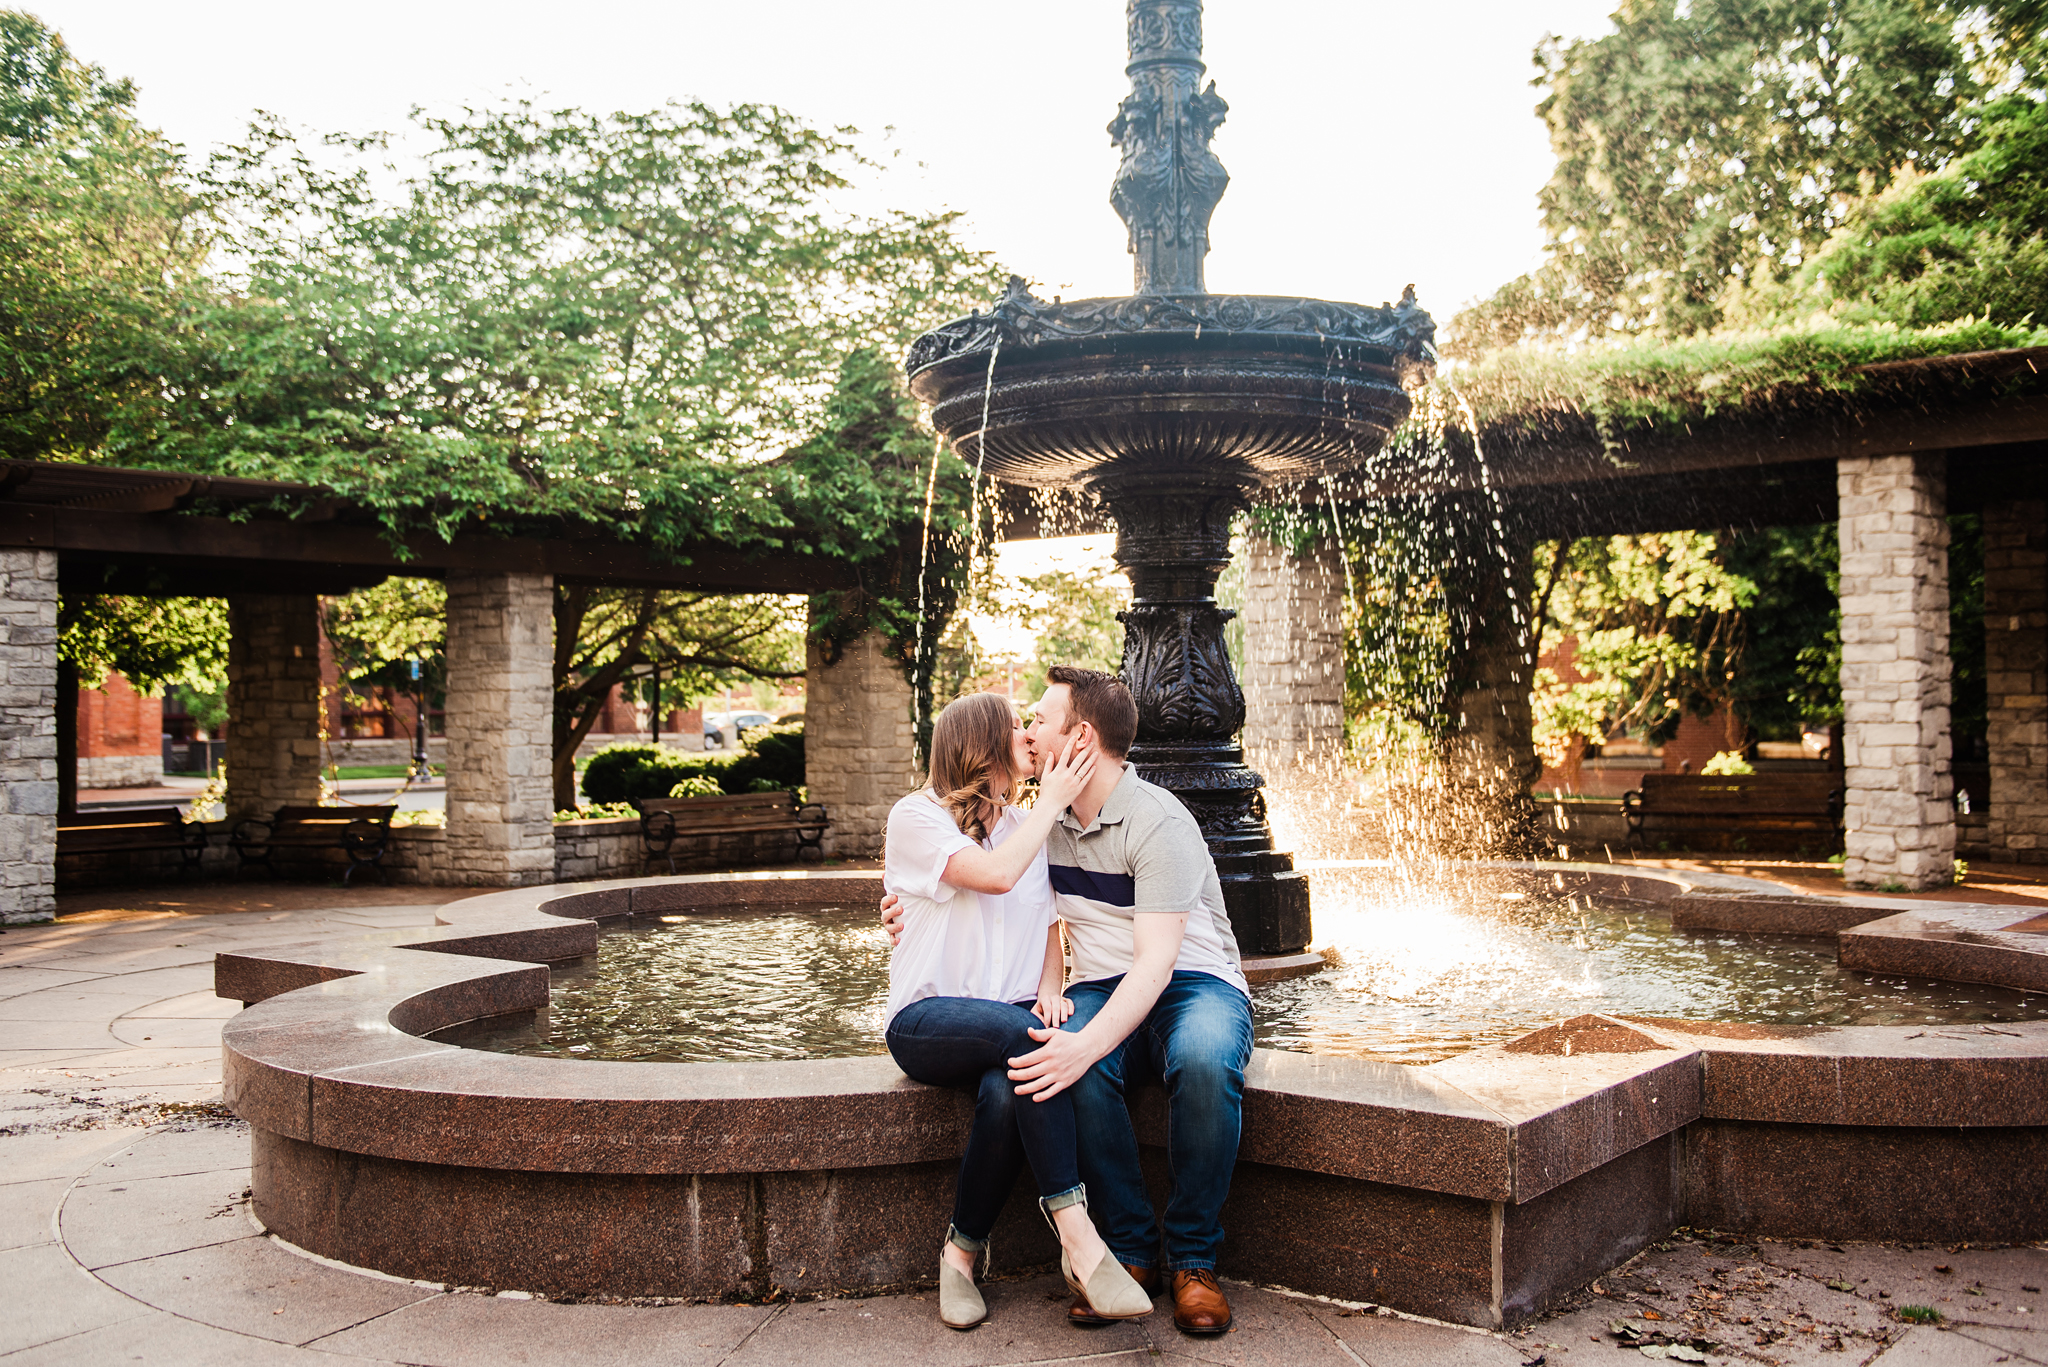 Franklin_Square_Park_Syracuse_Engagement_Session_JILL_STUDIO_Rochester_NY_Photographer_DSC_3907.jpg